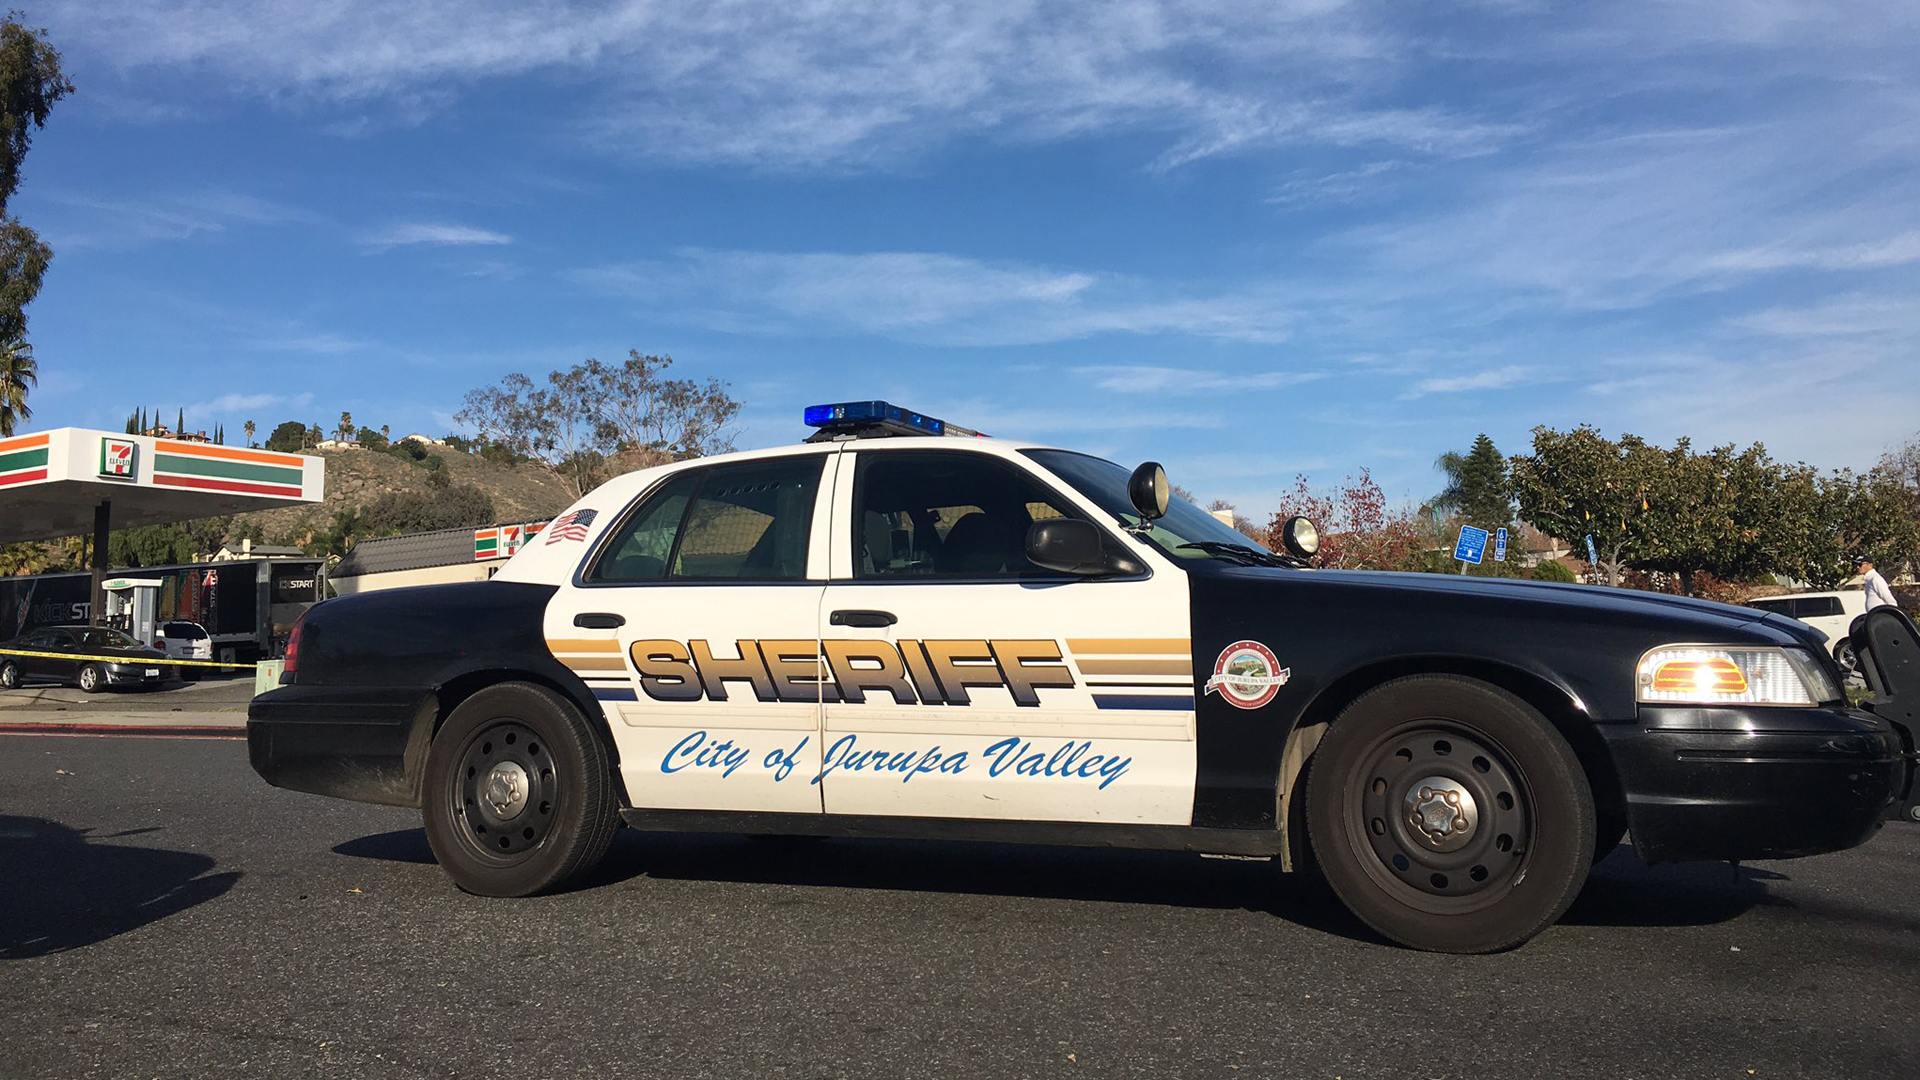 A Riverside County sheriff's vehicle is seen at the scene in Jurupa Valley where a deputy fired shots at suspects on Dec. 26, 2018, in a photo released by the department.